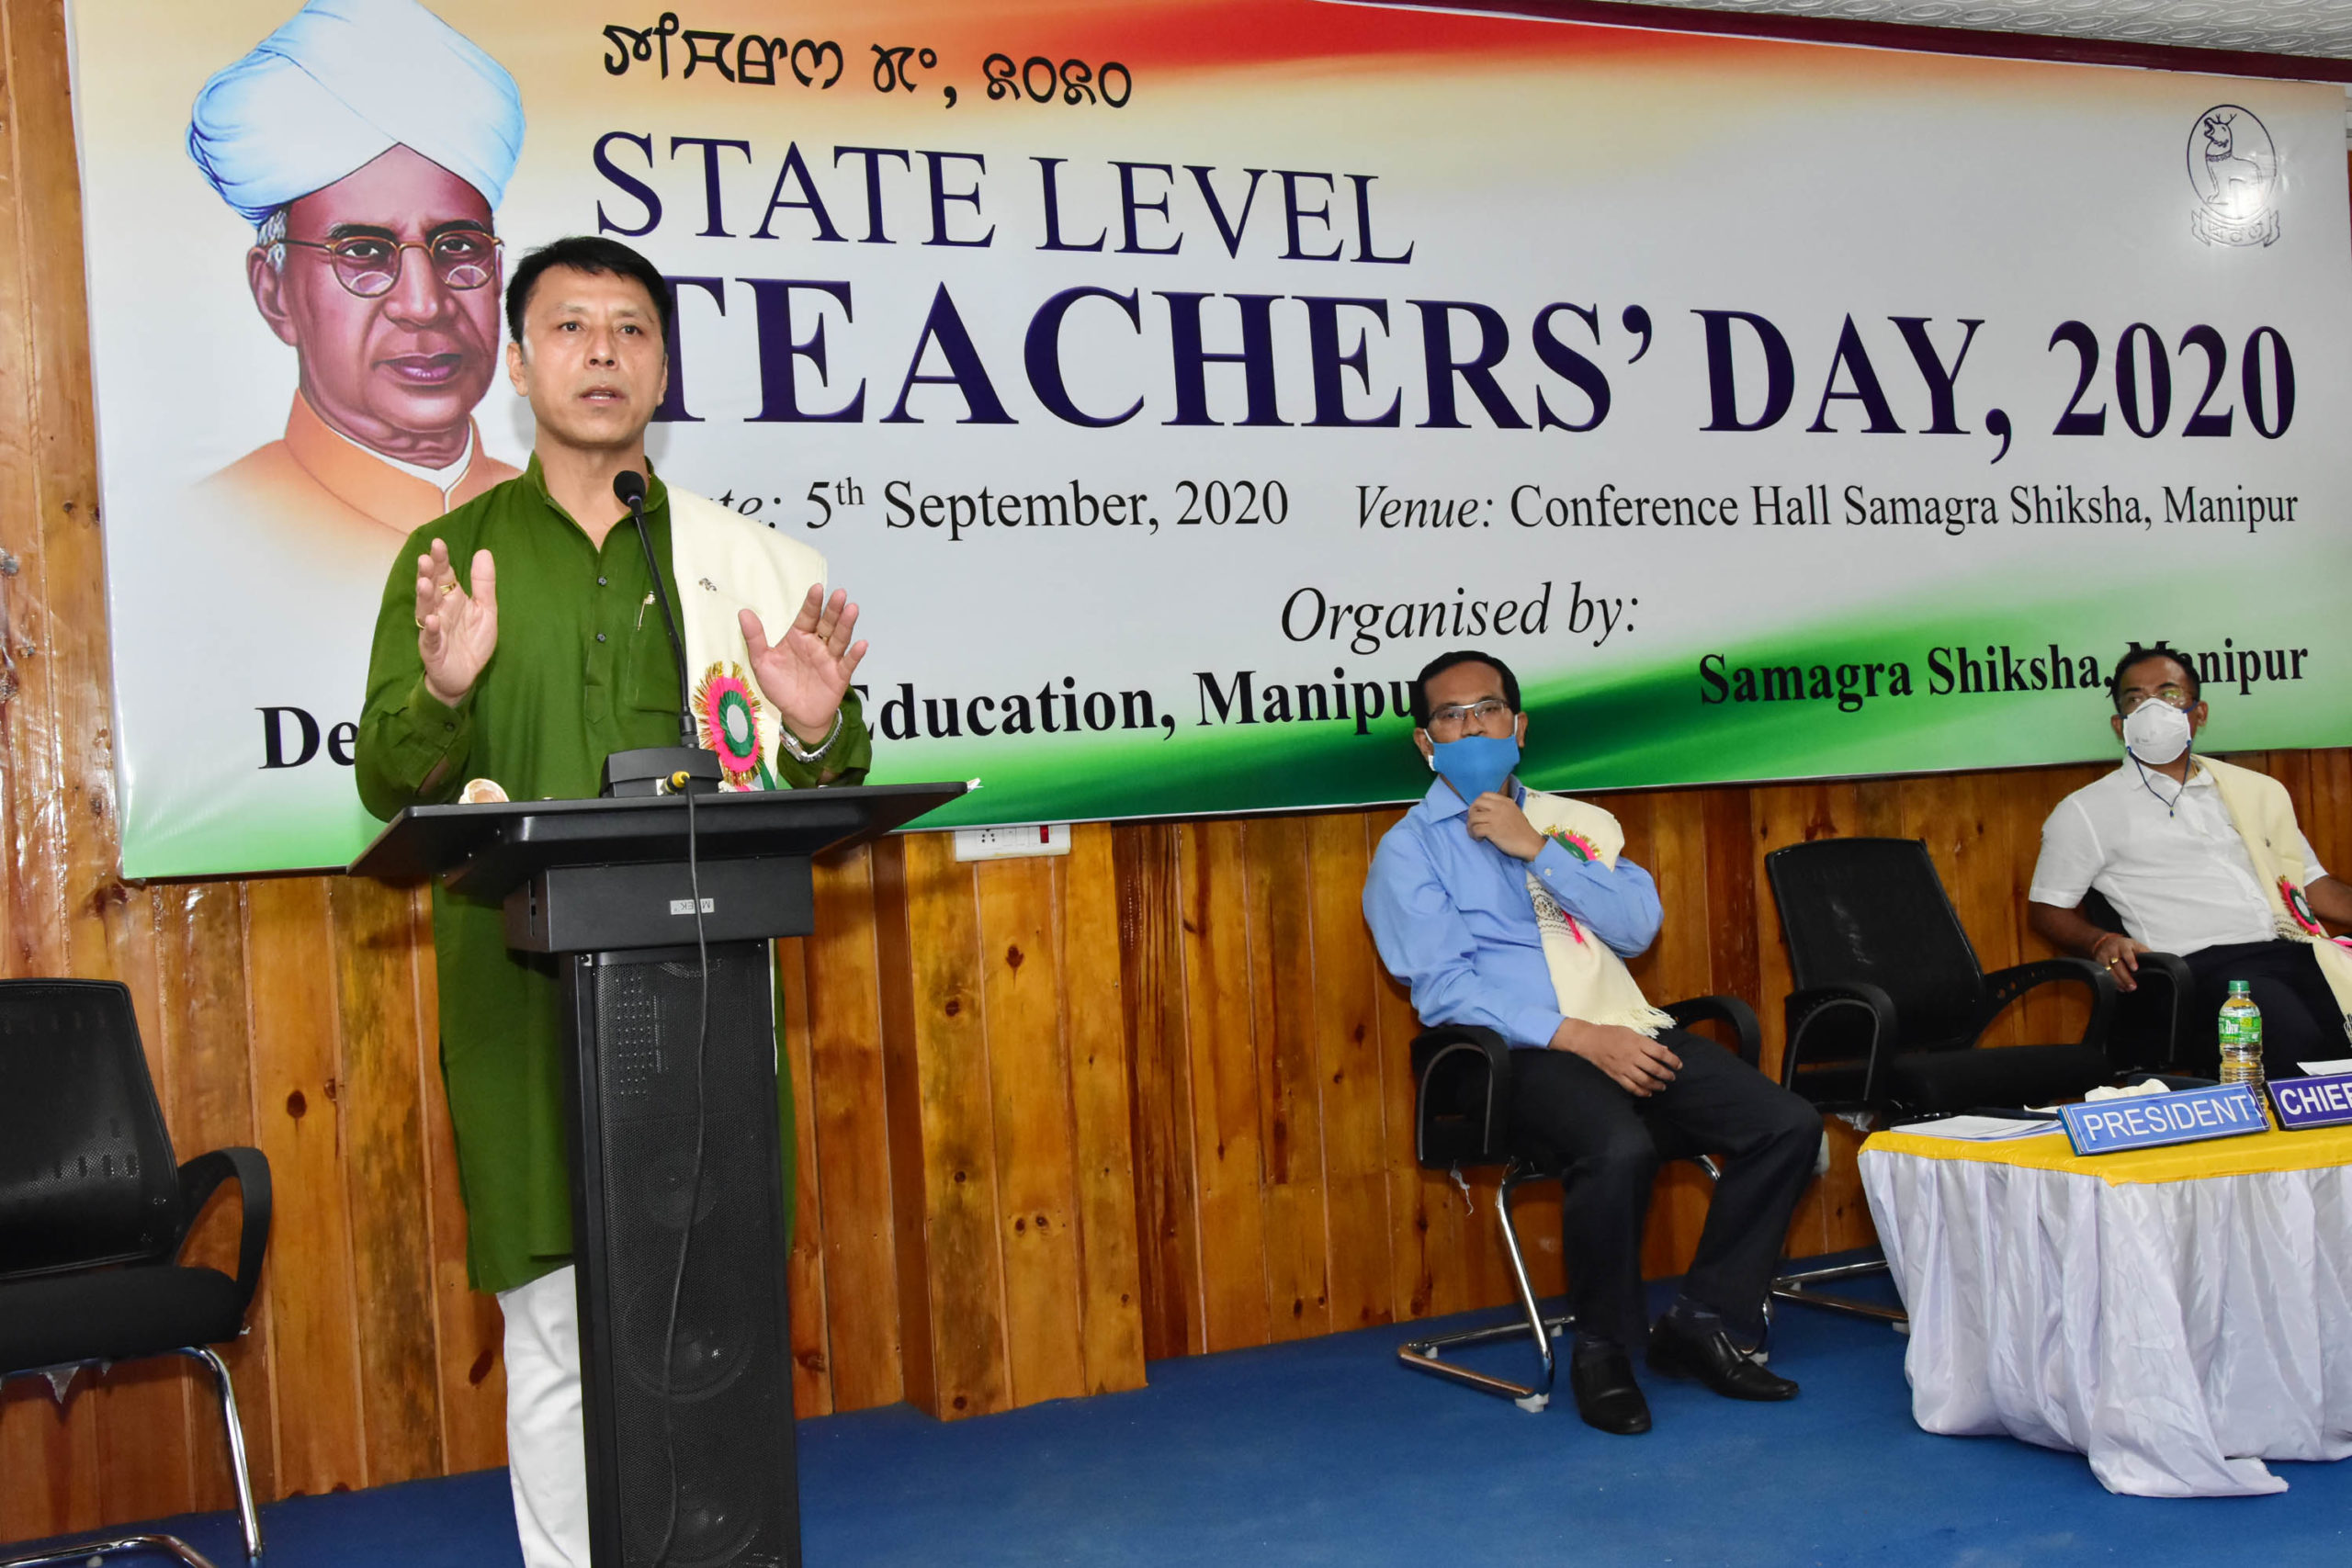 Seven distinguished teachers awarded on Teachers' Day